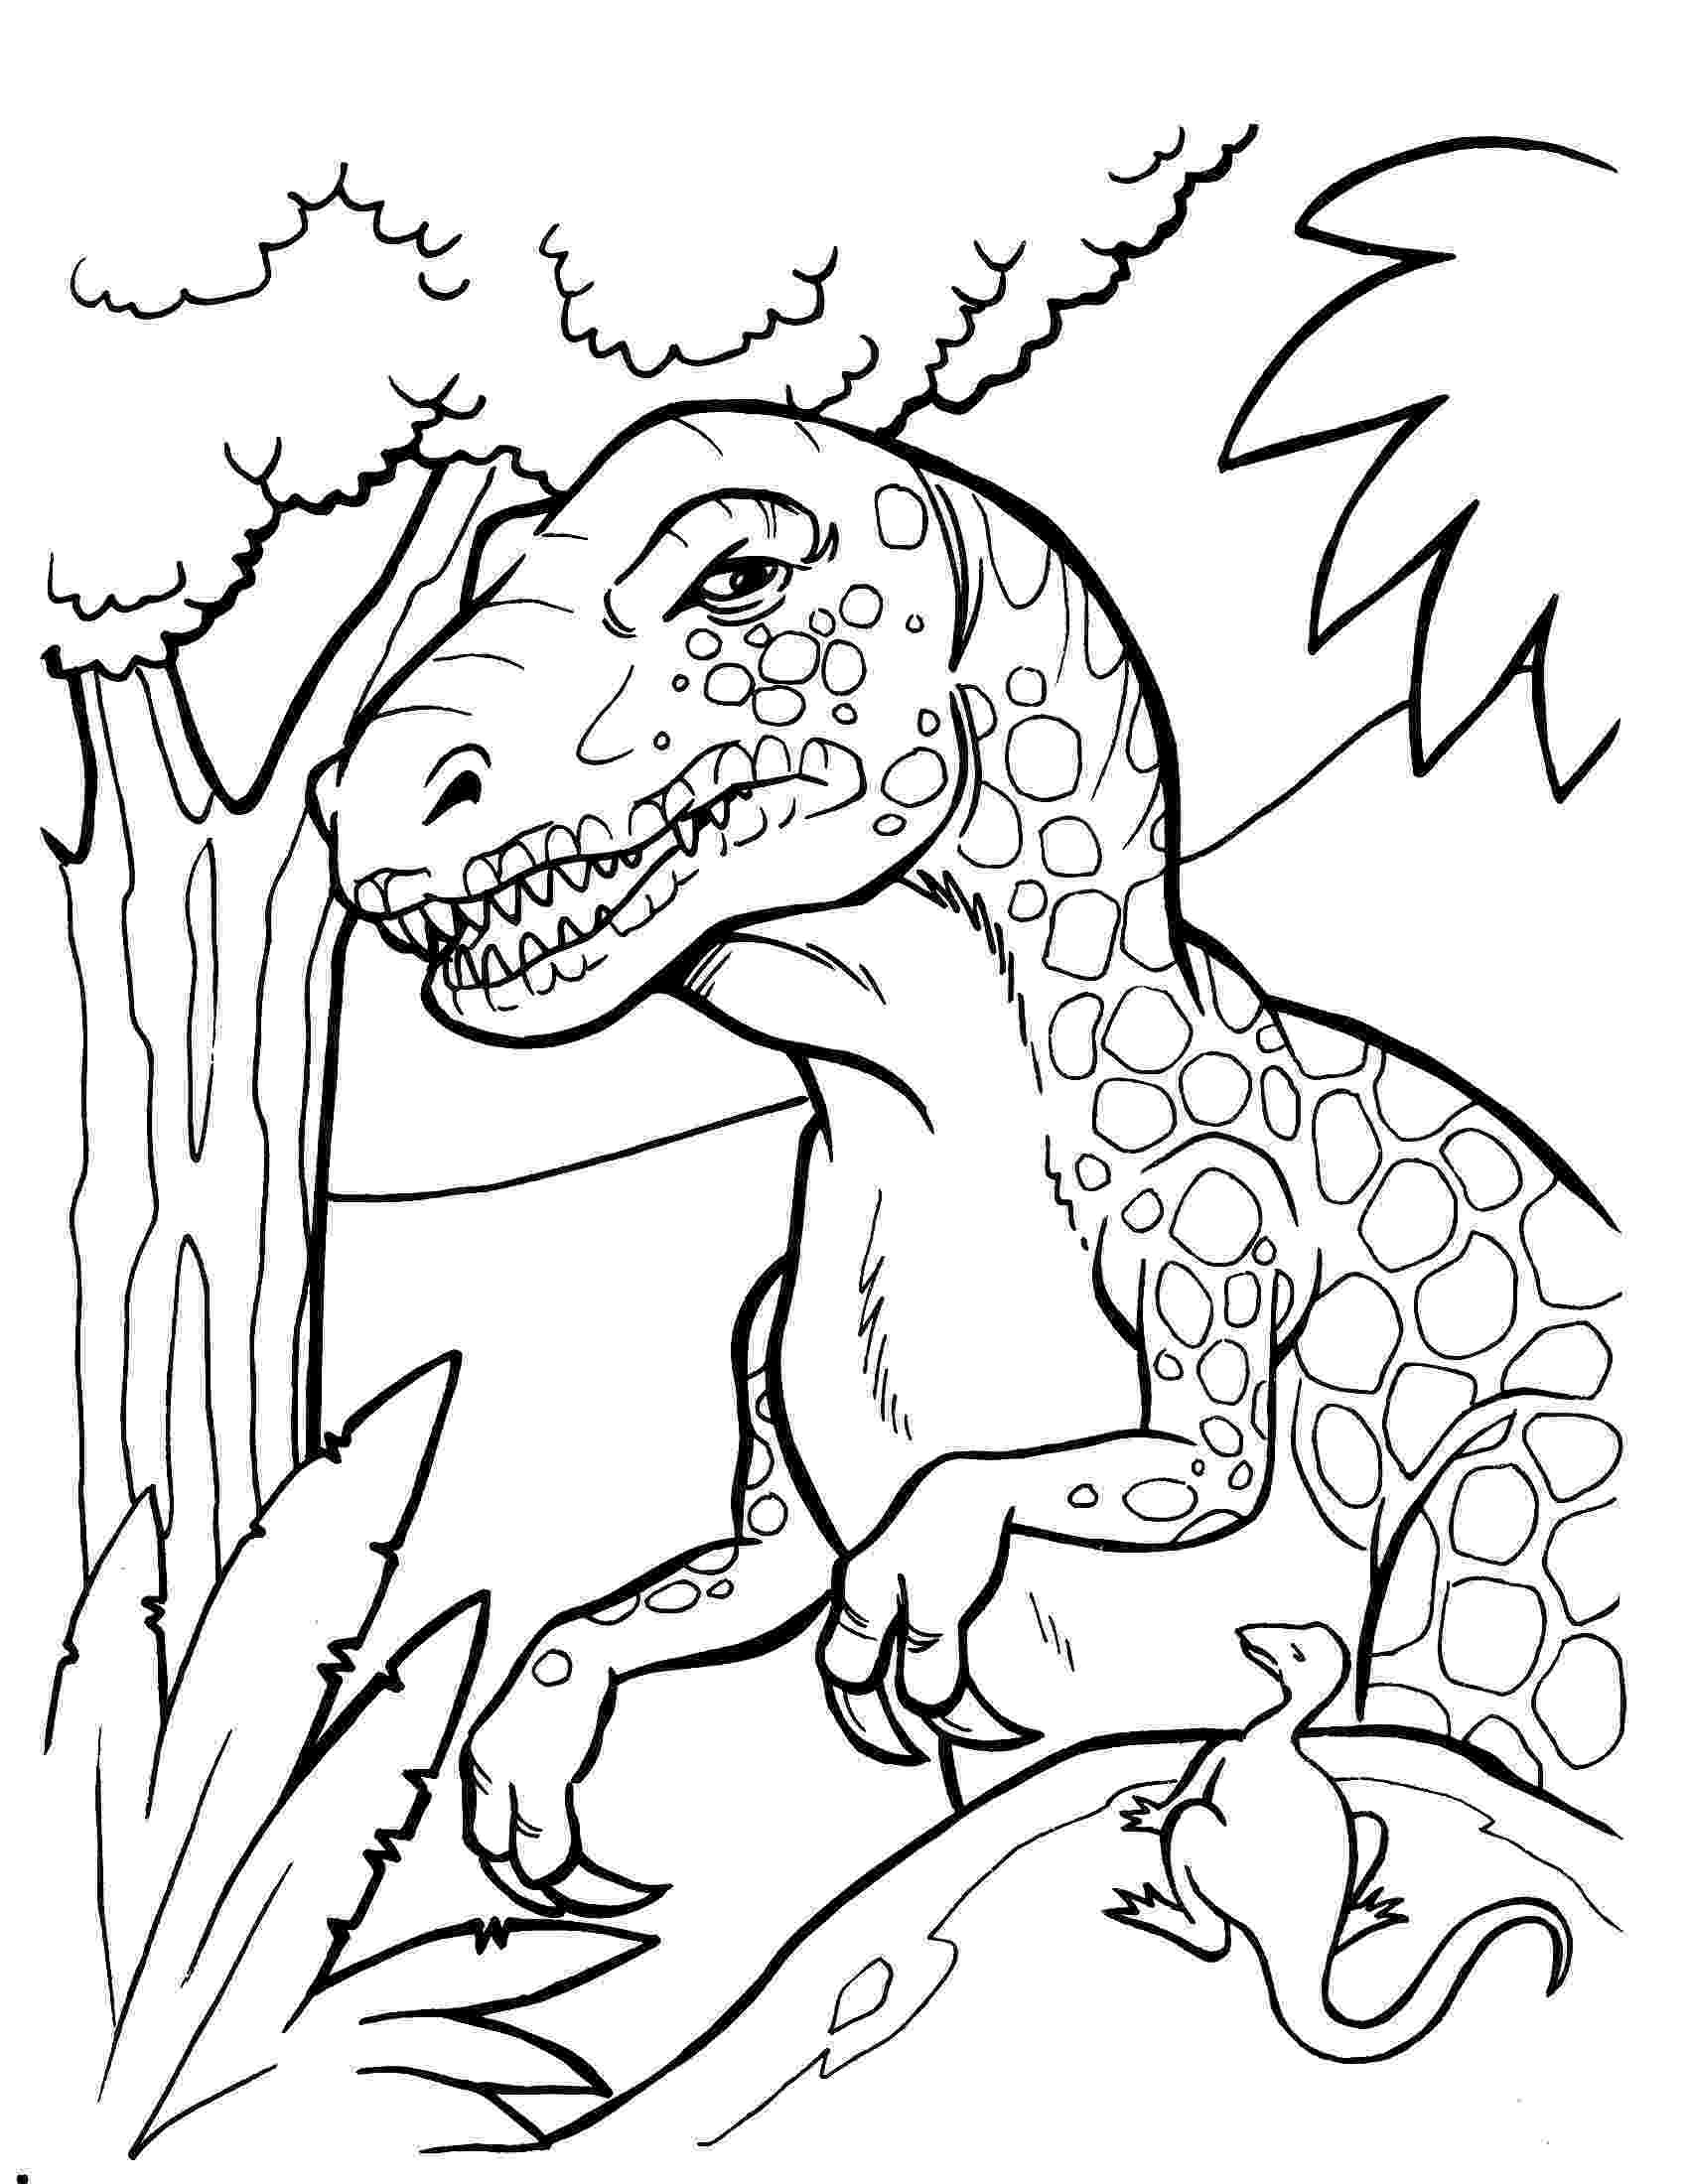 dinosaur coloring pages free printable free printable dinosaur coloring pages for kids pages coloring dinosaur printable free